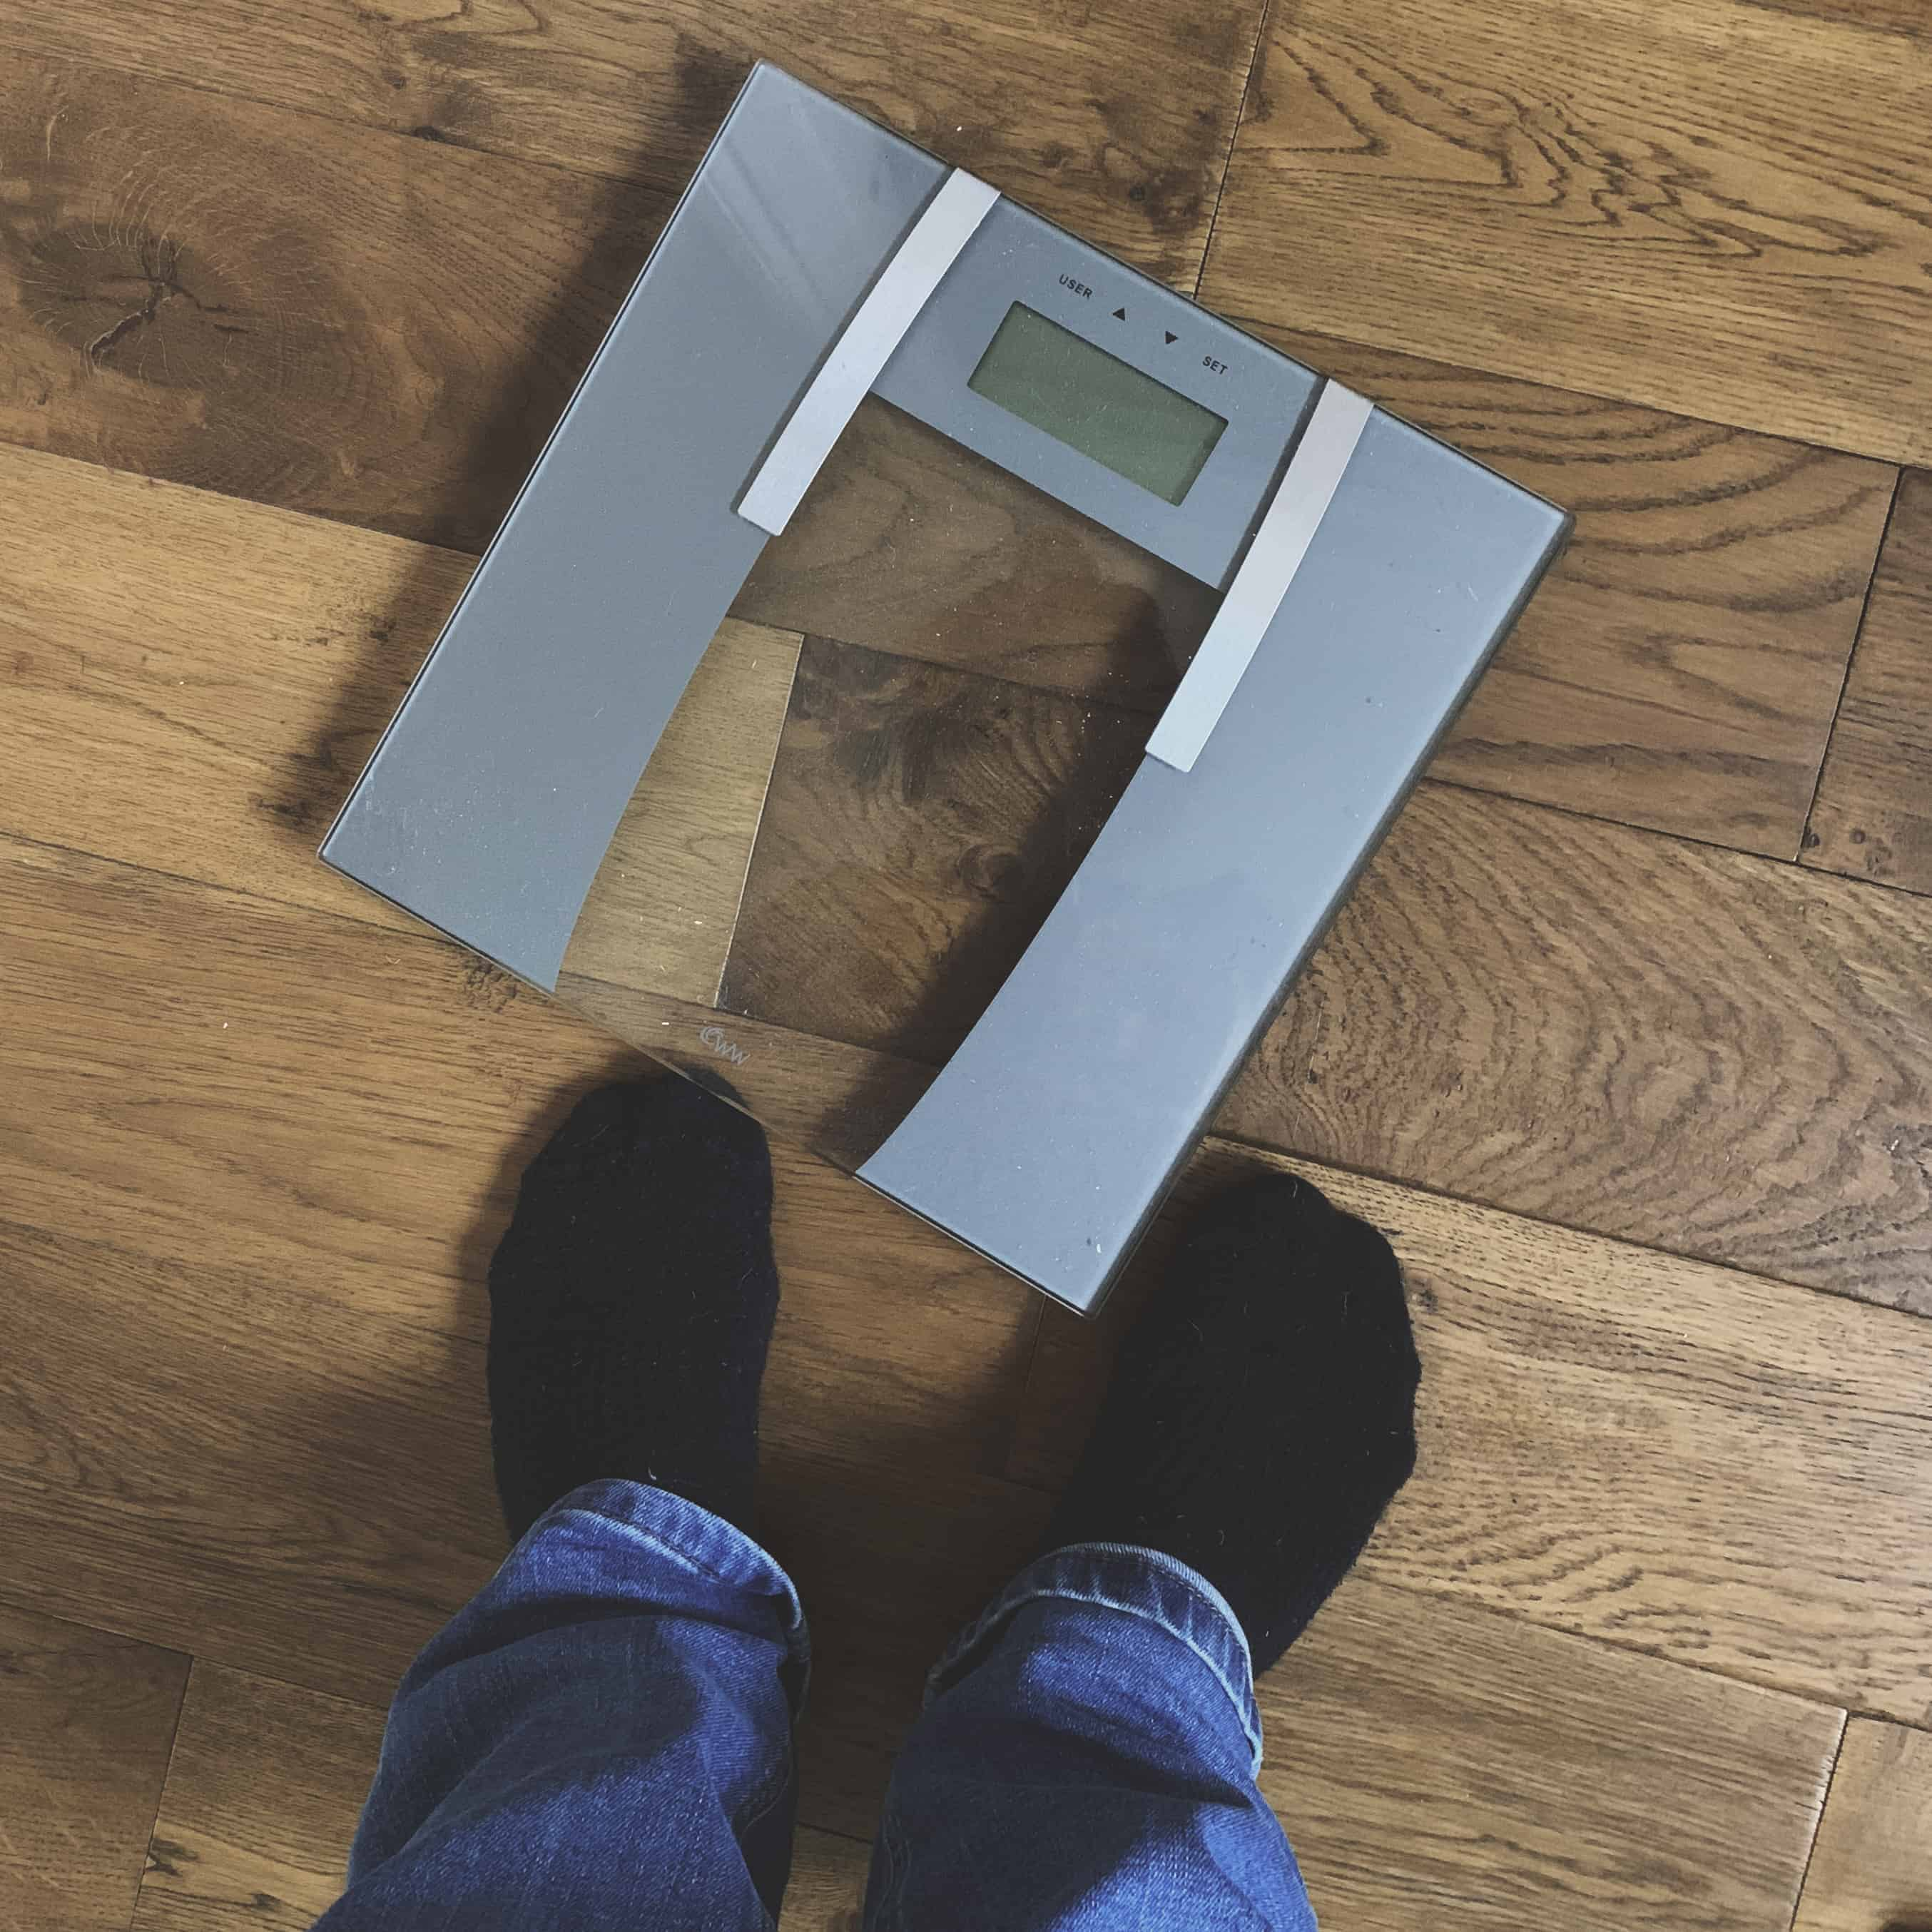 Some thoughts on the 5:2 diet and why it doesn't work for me